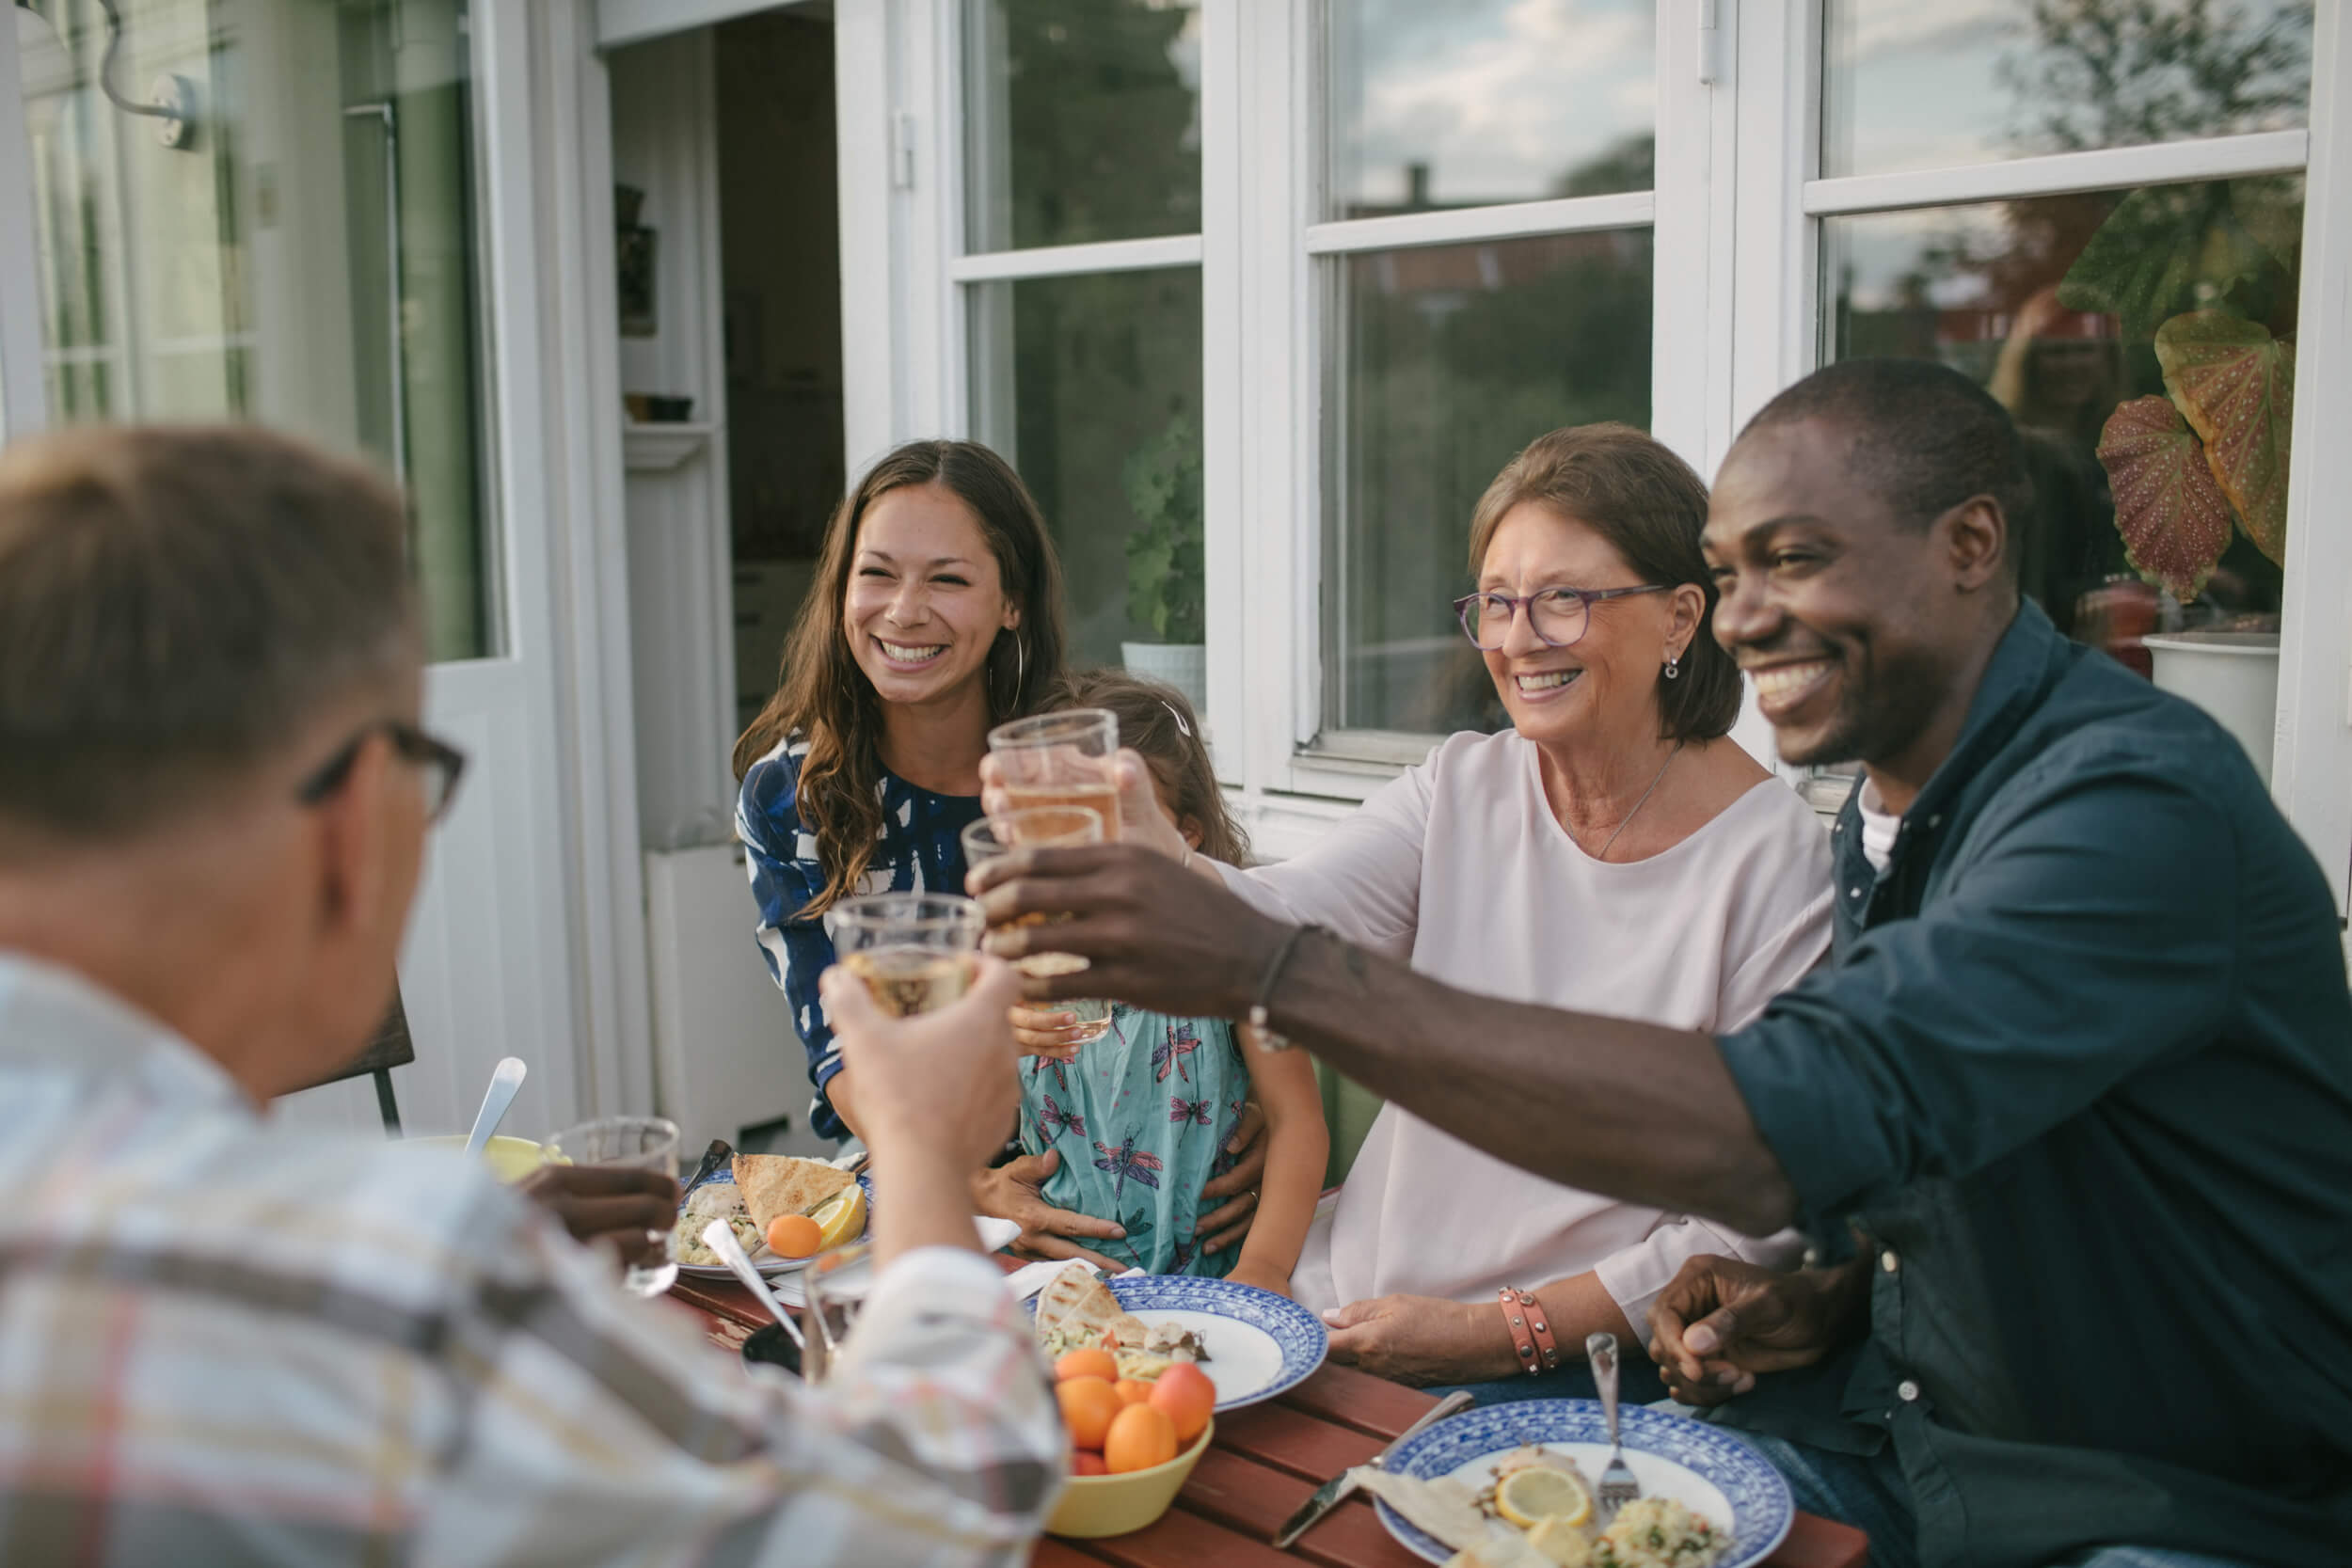 Group of 4 people eating outside and raising glasses. There are 2 women and a man to the right facing the camera, and a man with his back to the camera on the left. They are multi generational.